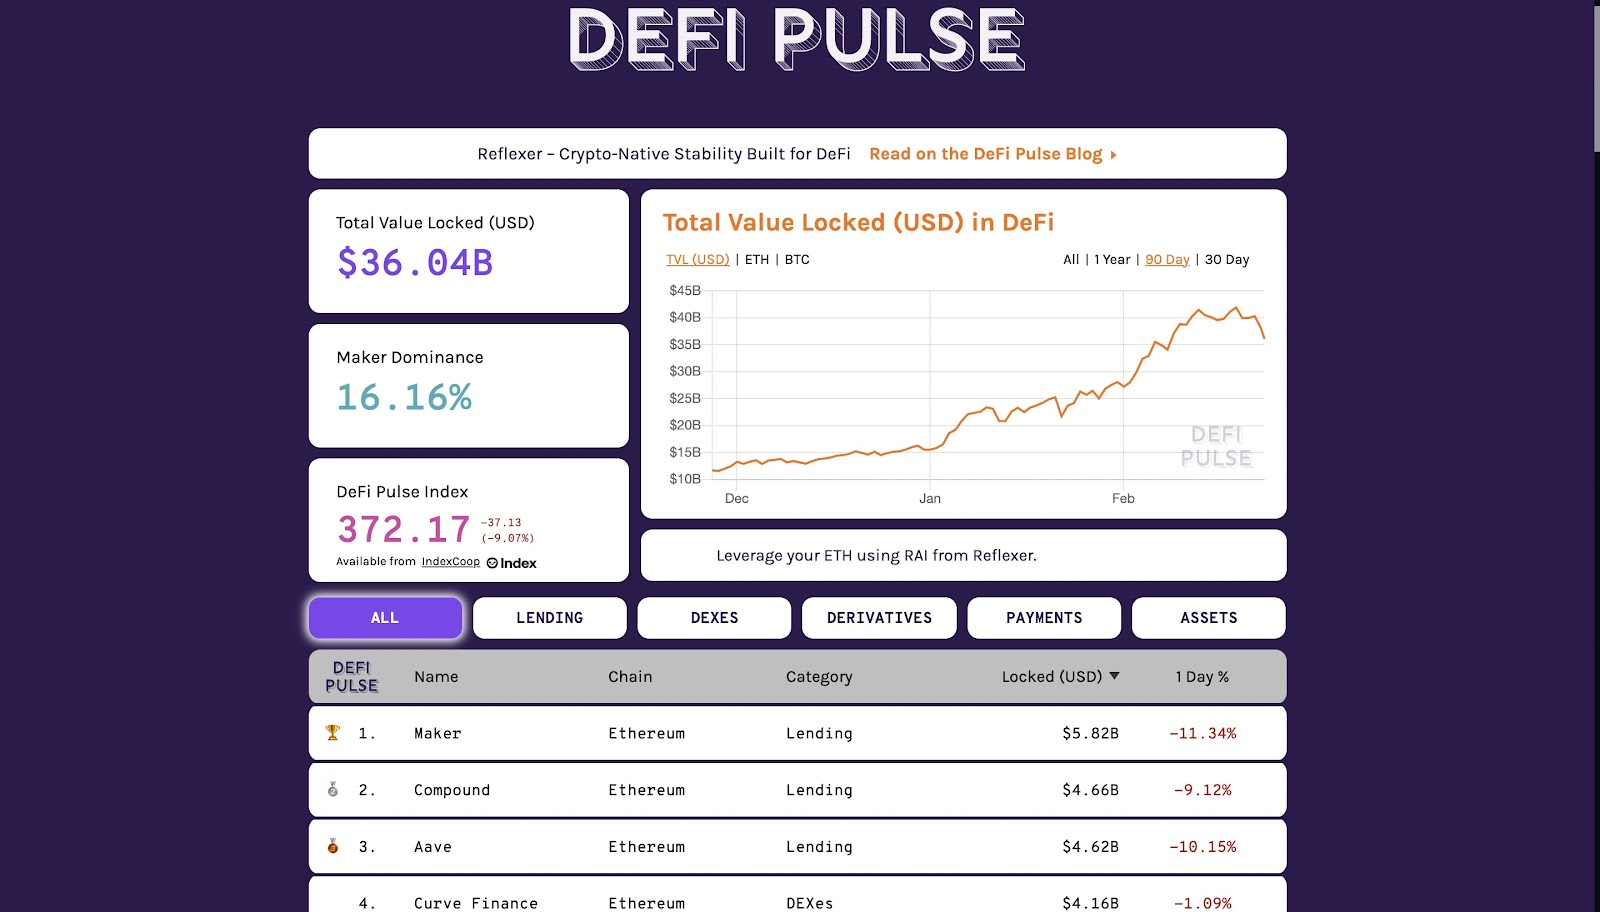 Aave crypto coin vs other DeFi protocols